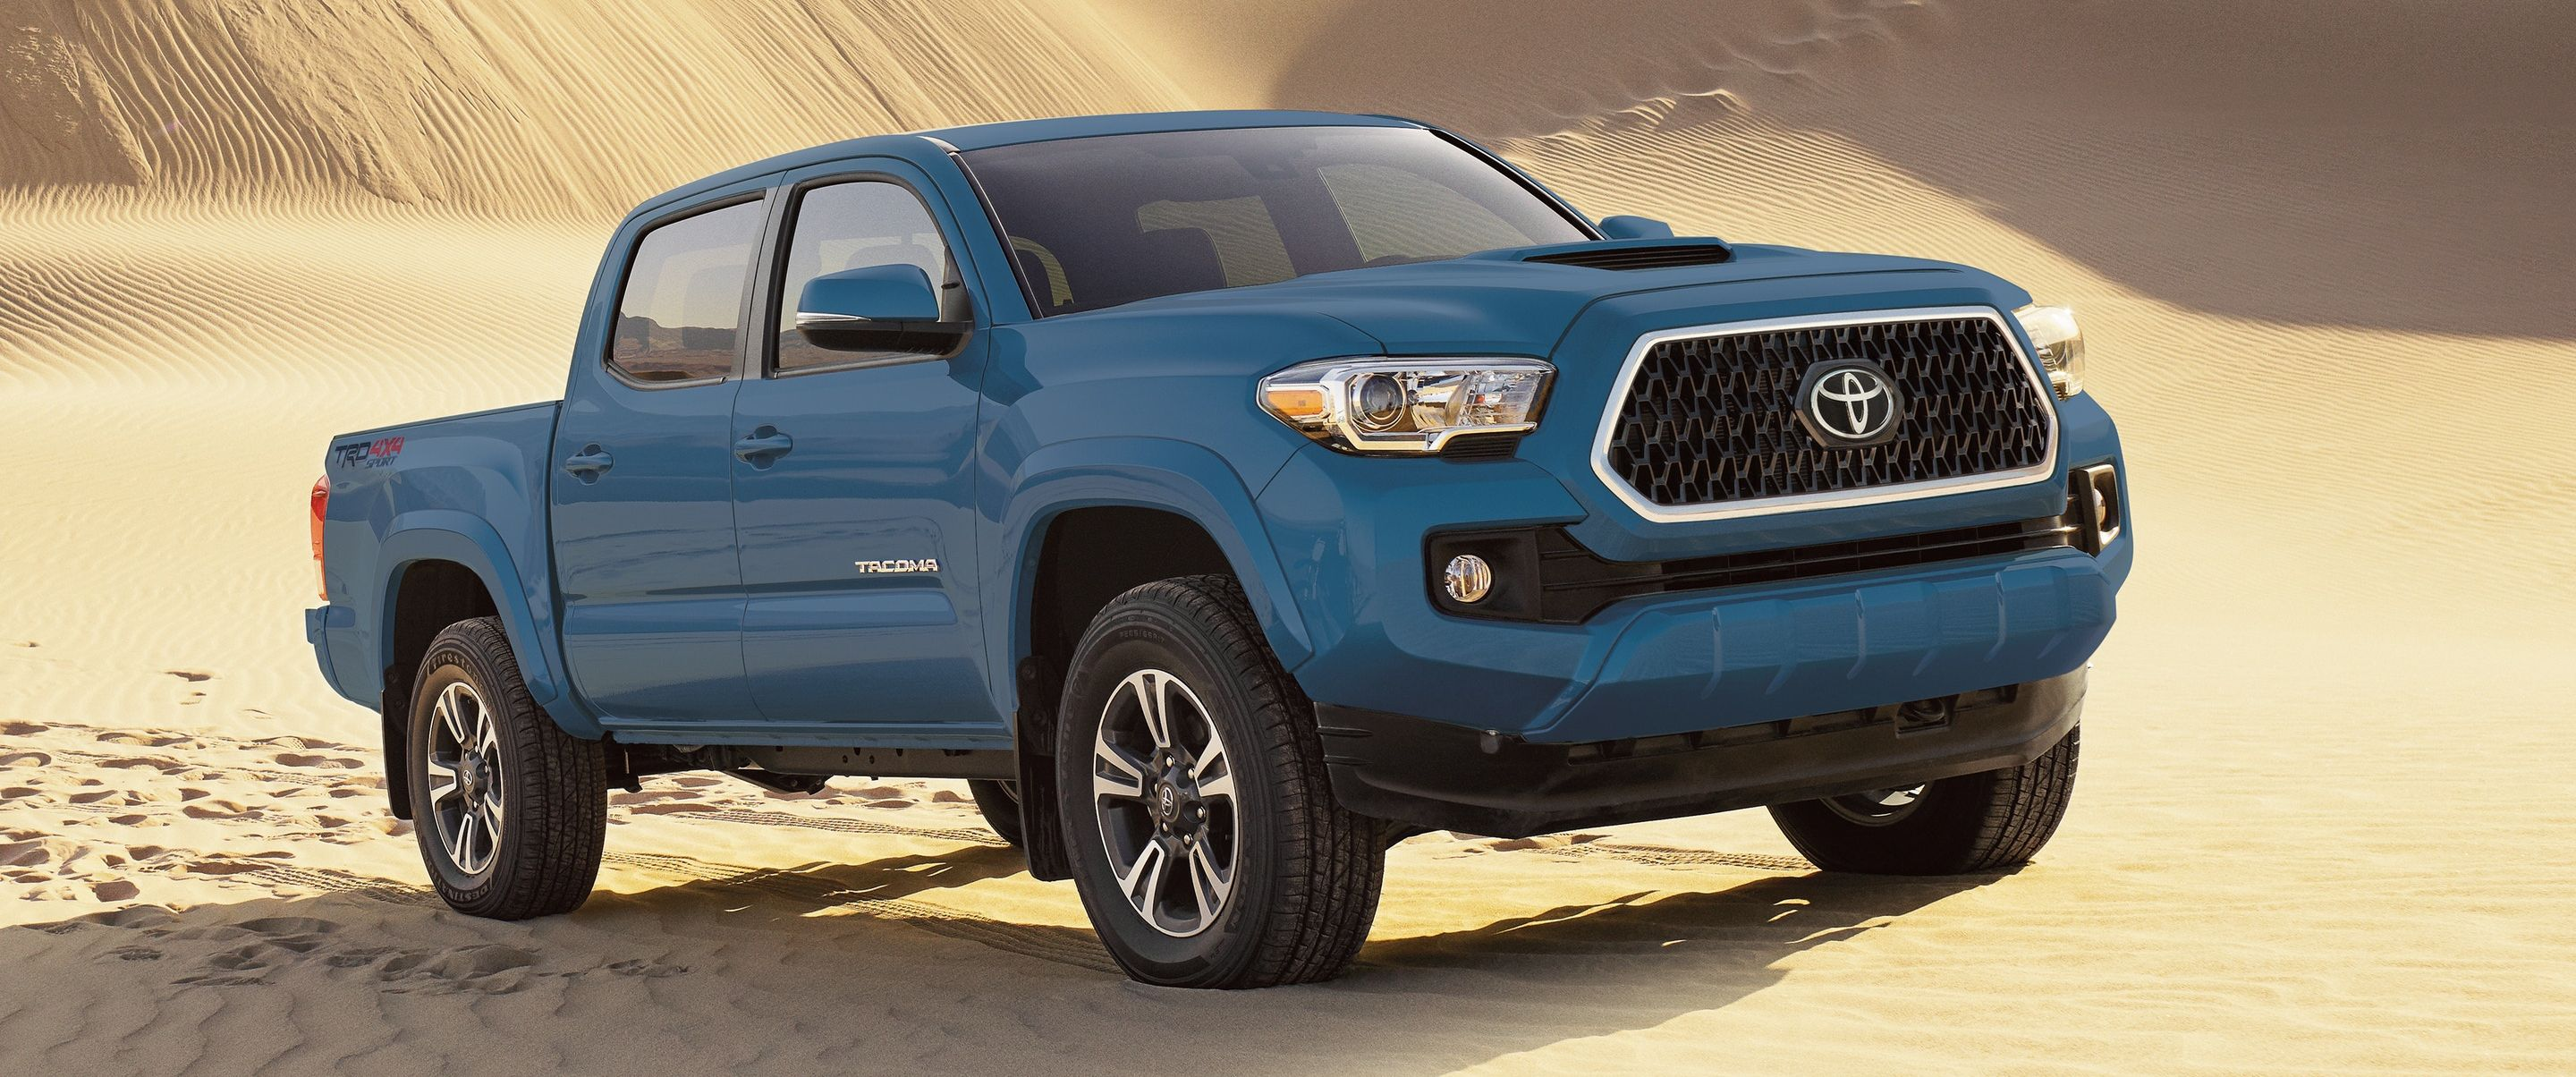 2019 Toyota Tacoma for Sale near Ann Arbor, MI